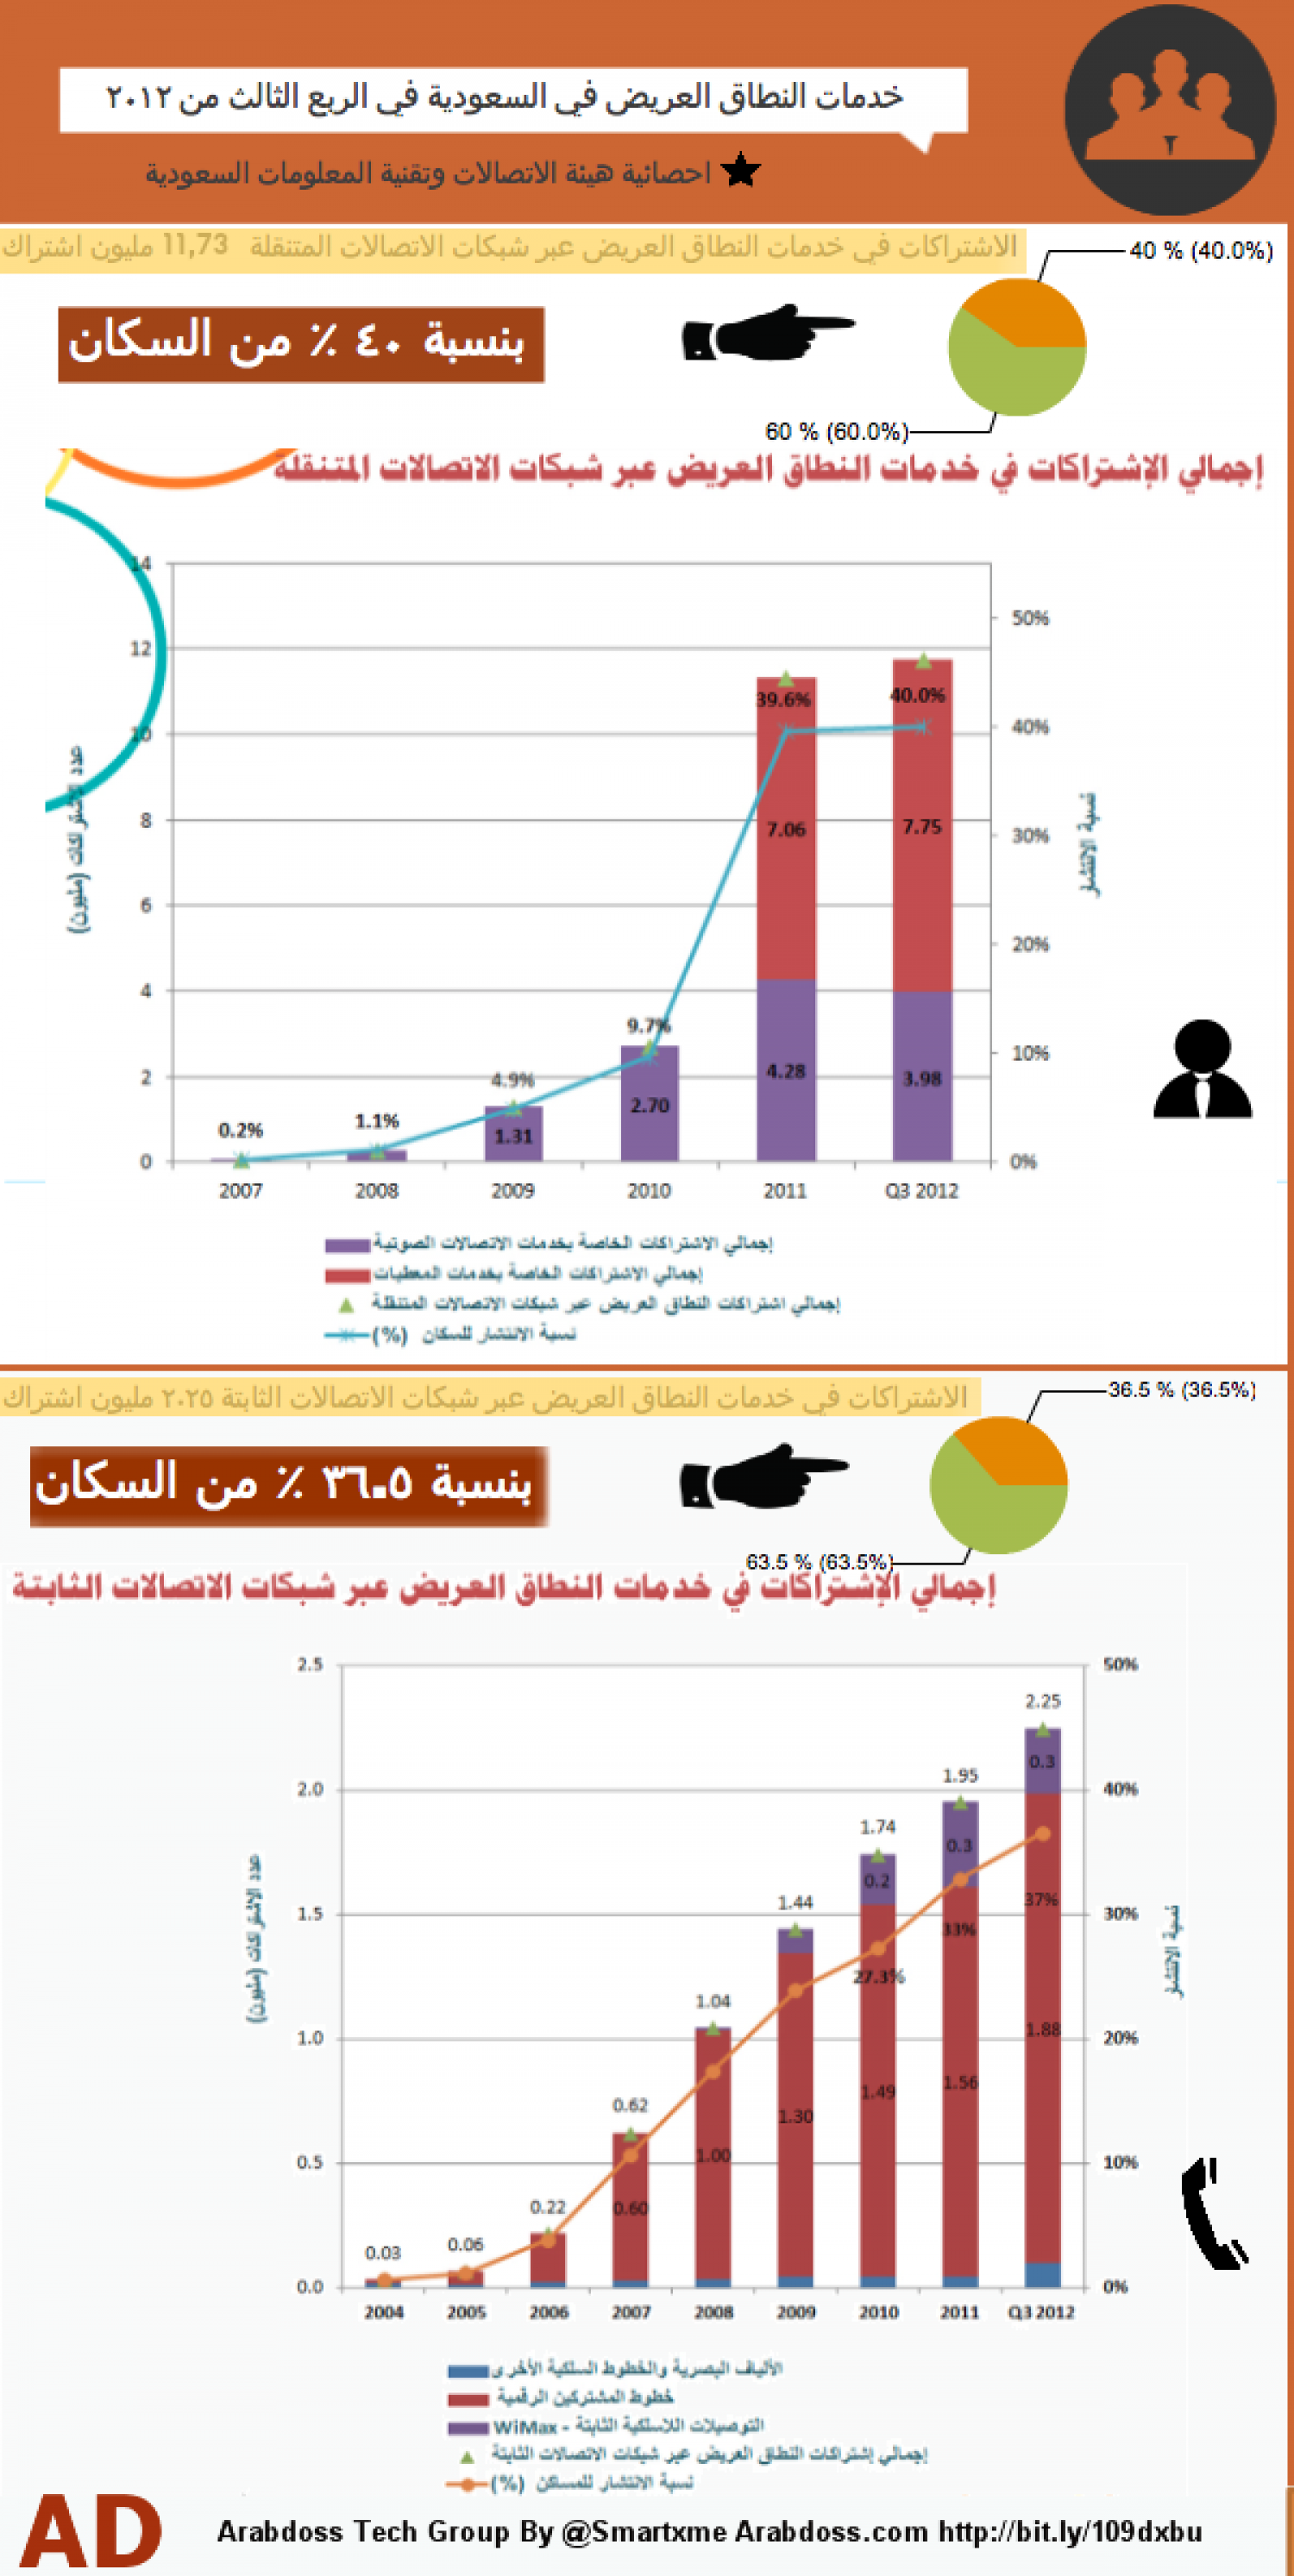 Saudi arabia broadband stats in 3Q 2012 Infographic